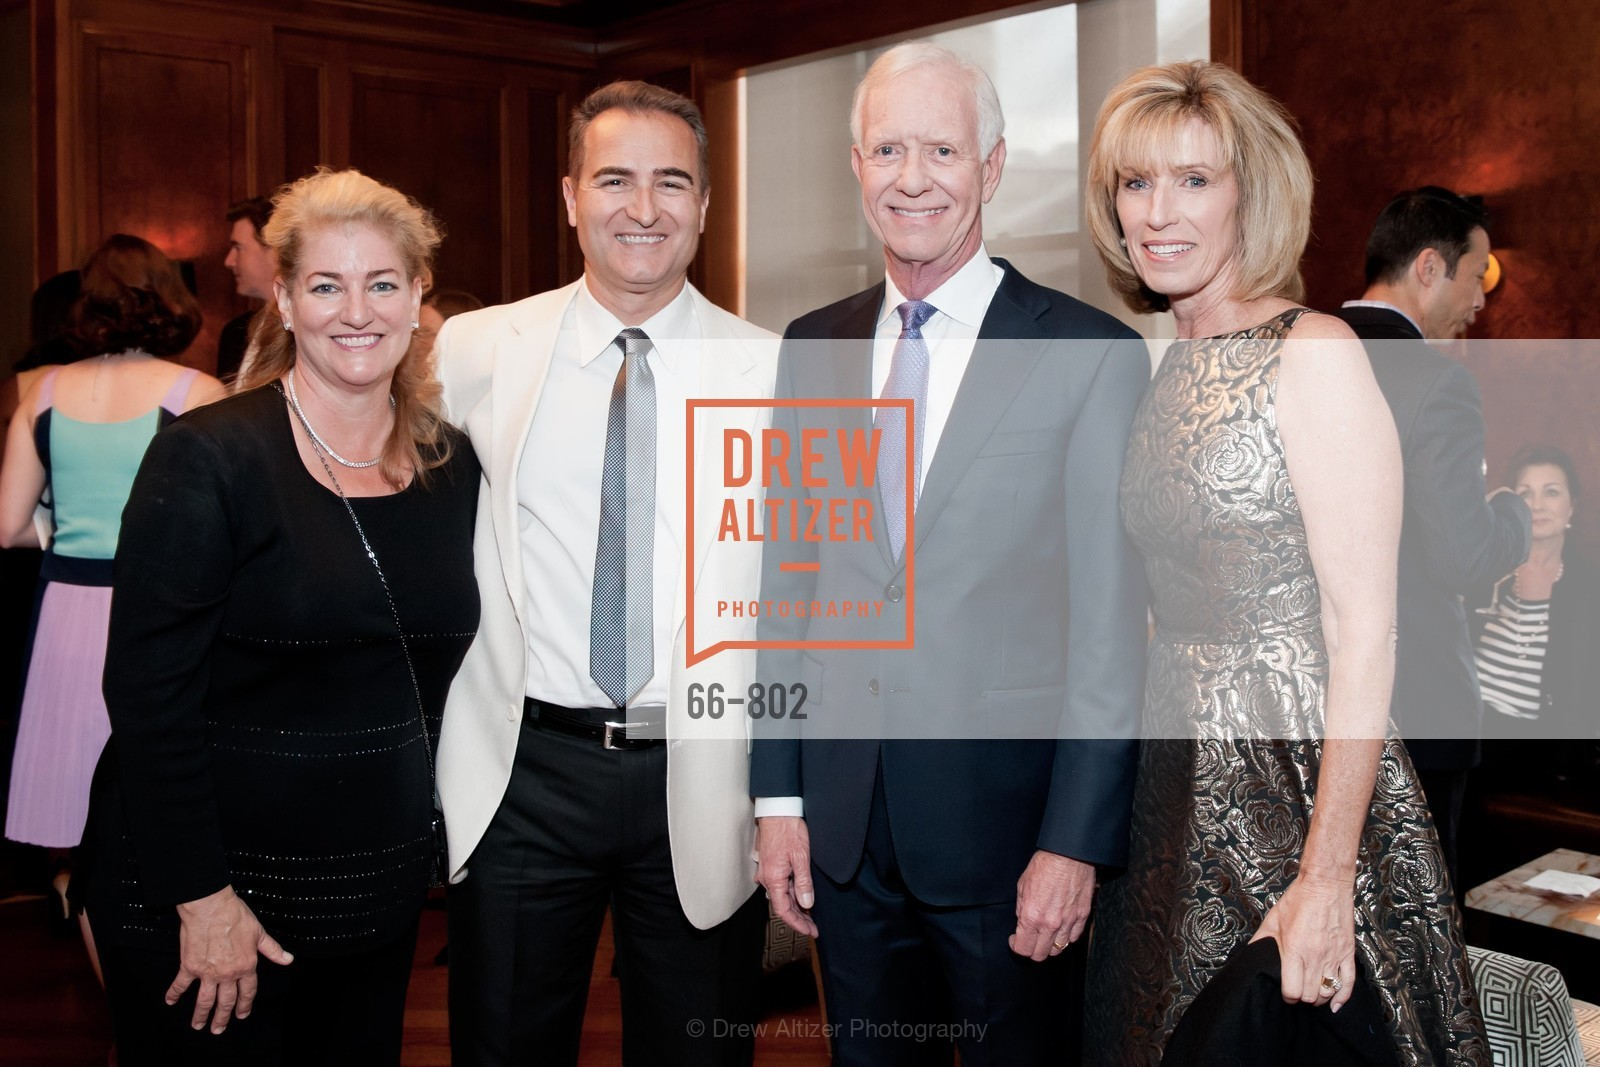 George Papadoyannis, Sully Sullenberger, Lorrie Sullenberger, MR PORTER Celebrate The San Francisco Issue of The Journal, US, April 24th, 2015,Drew Altizer, Drew Altizer Photography, full-service agency, private events, San Francisco photographer, photographer california